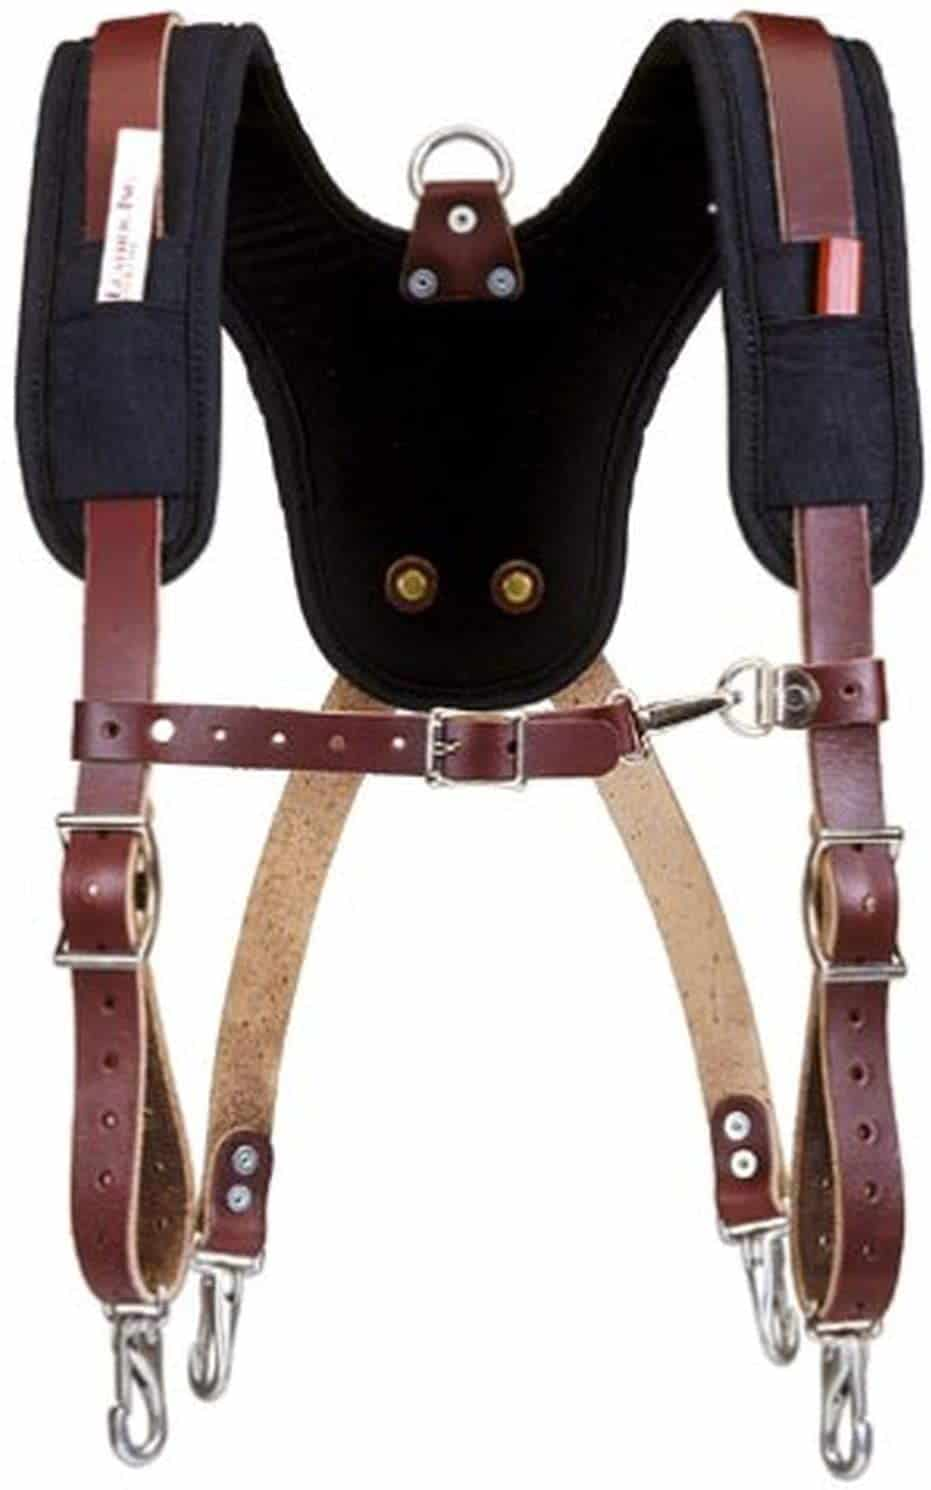 Best premium & most durable tool belt suspenders- Occidental Leather 5055 Stronghold